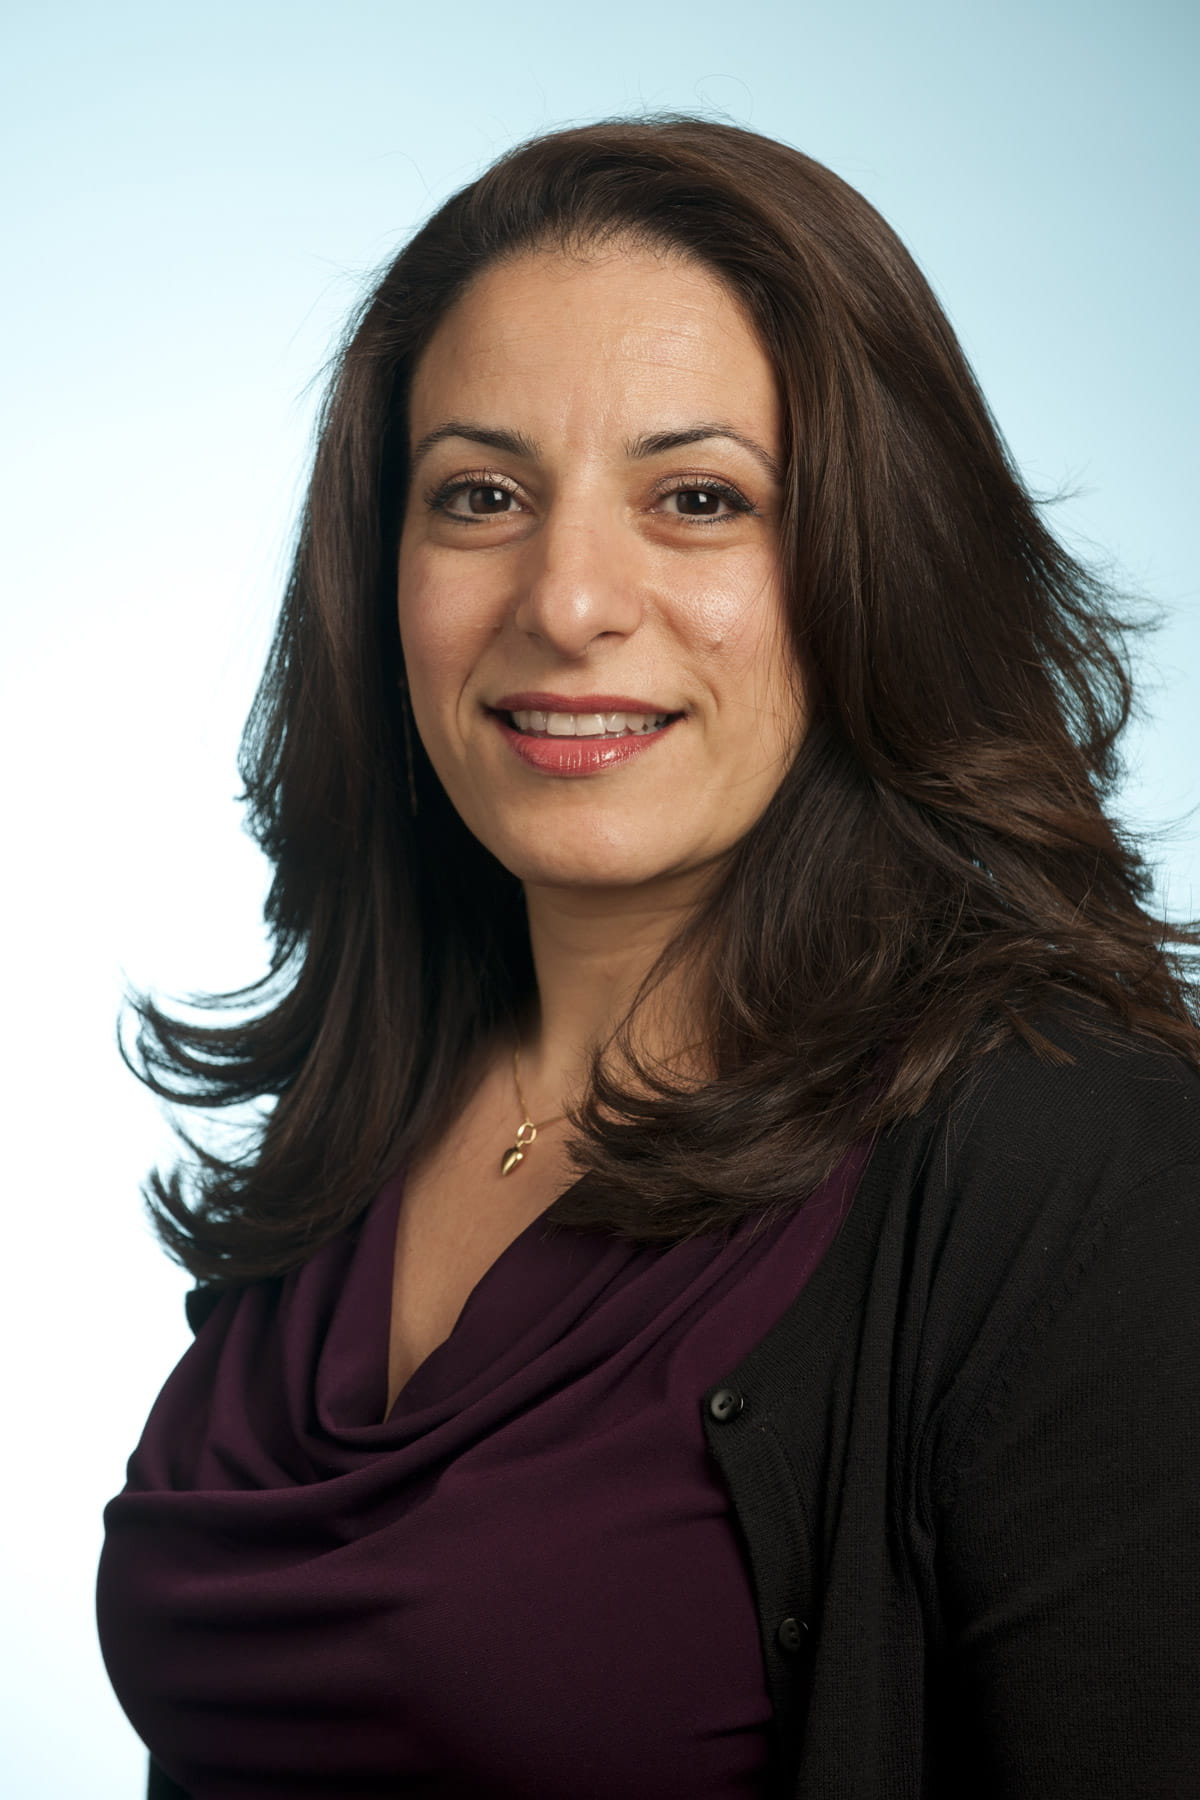 A photo of Nancy Daraiseh.